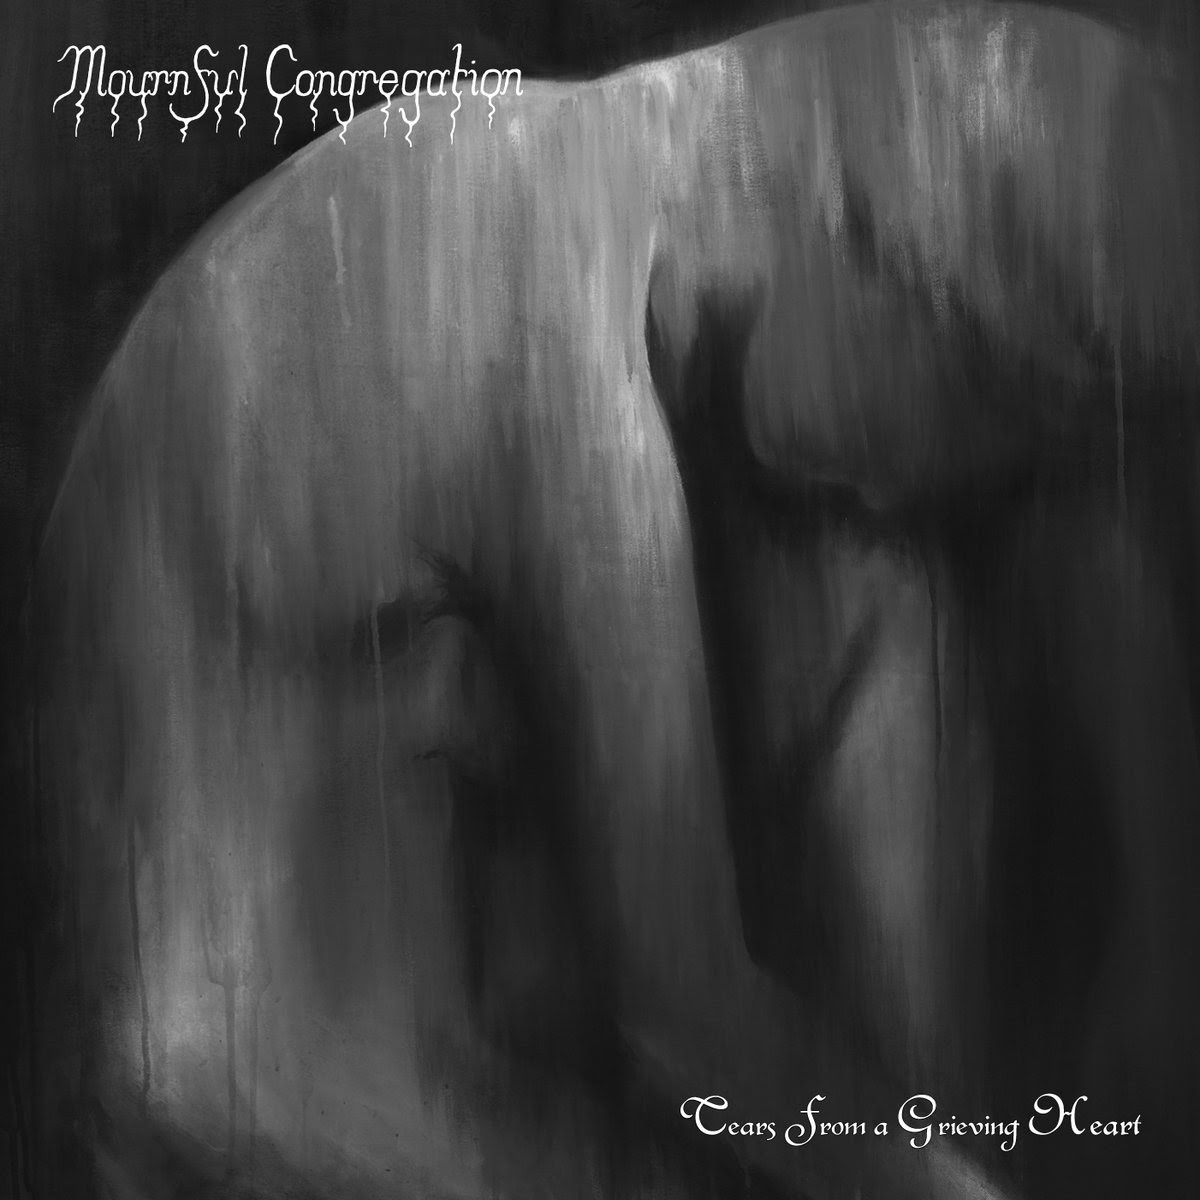 Mournful Congregation - Tears from a Grieving Heart (Reissue 2012)